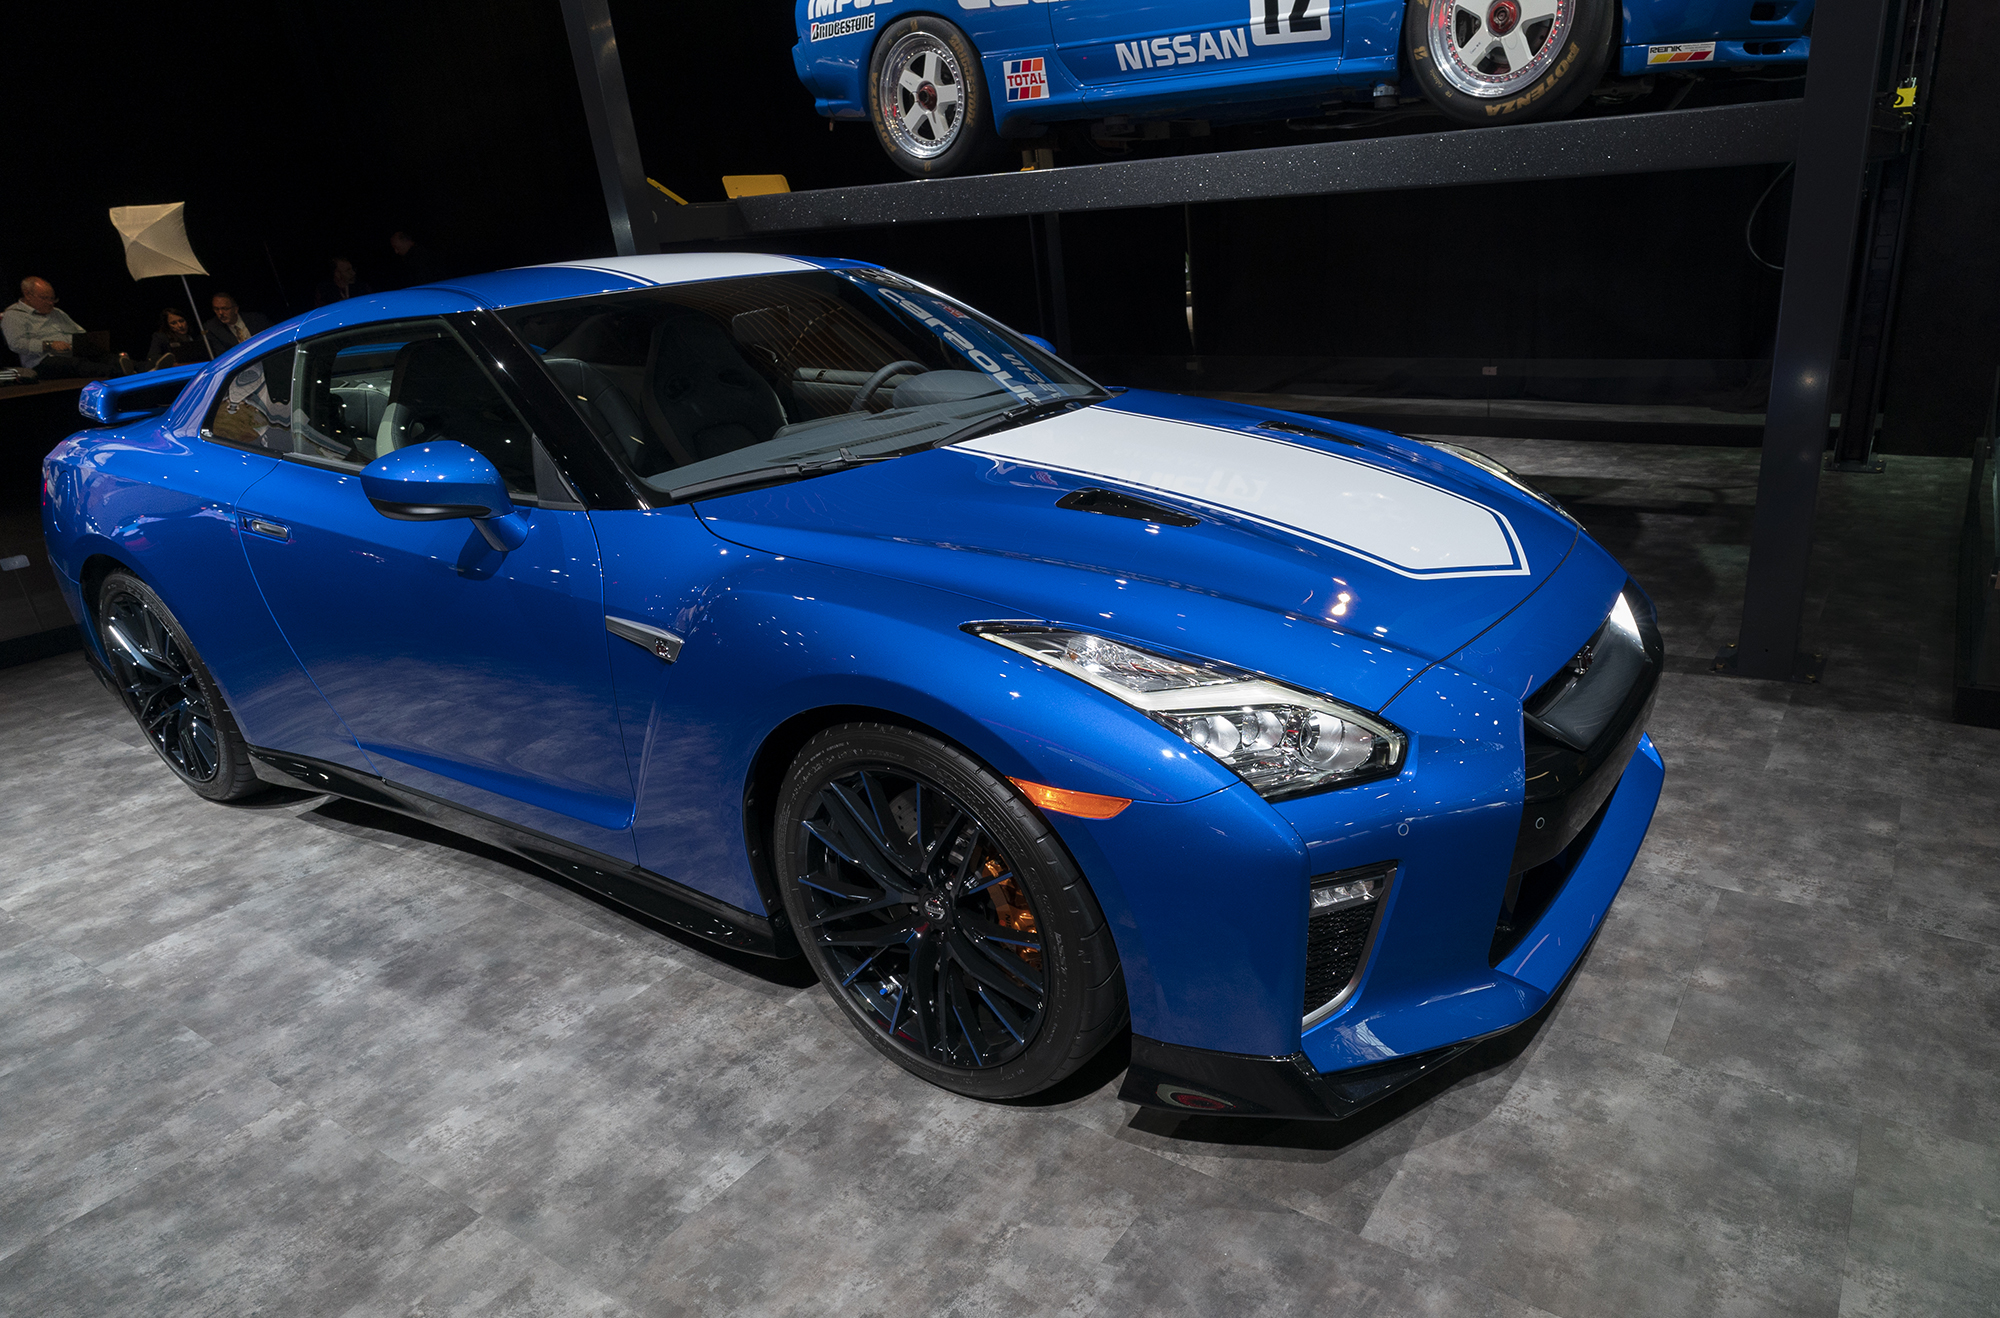 NISSAN_GT_R_50TH_ANNIVERSARY_EDITION_RESIZED